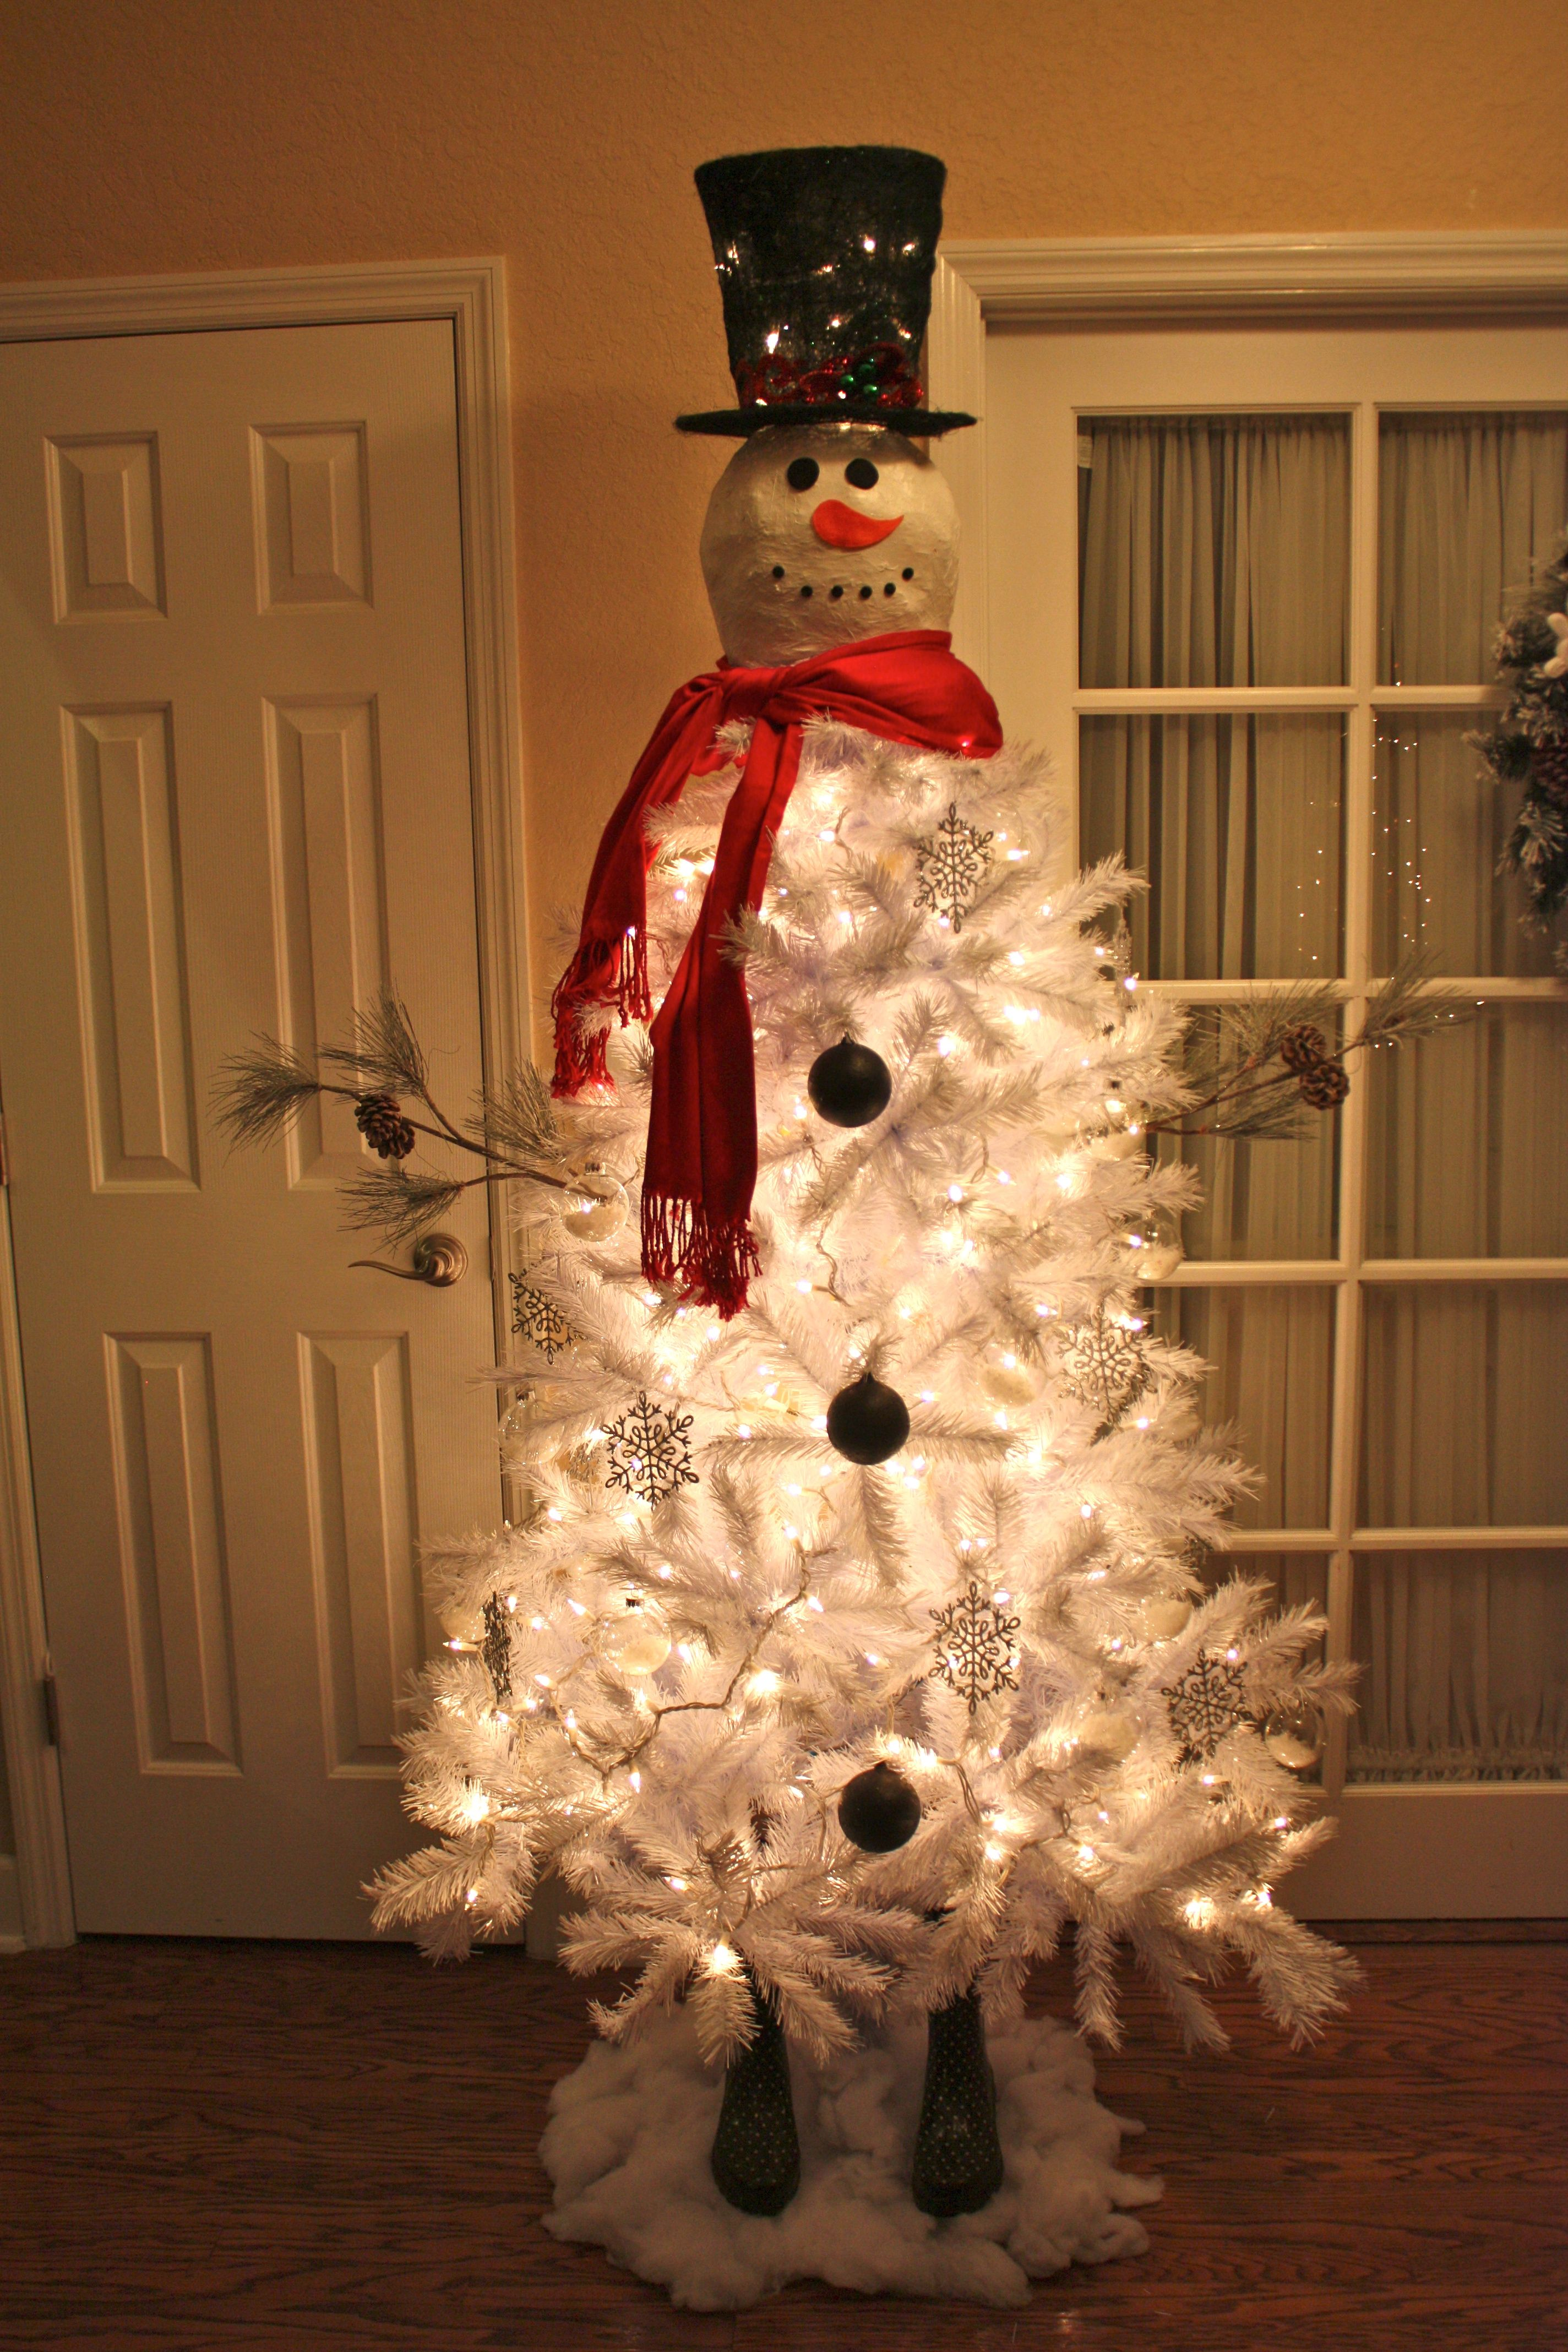 My Snowman Tree that I made :)